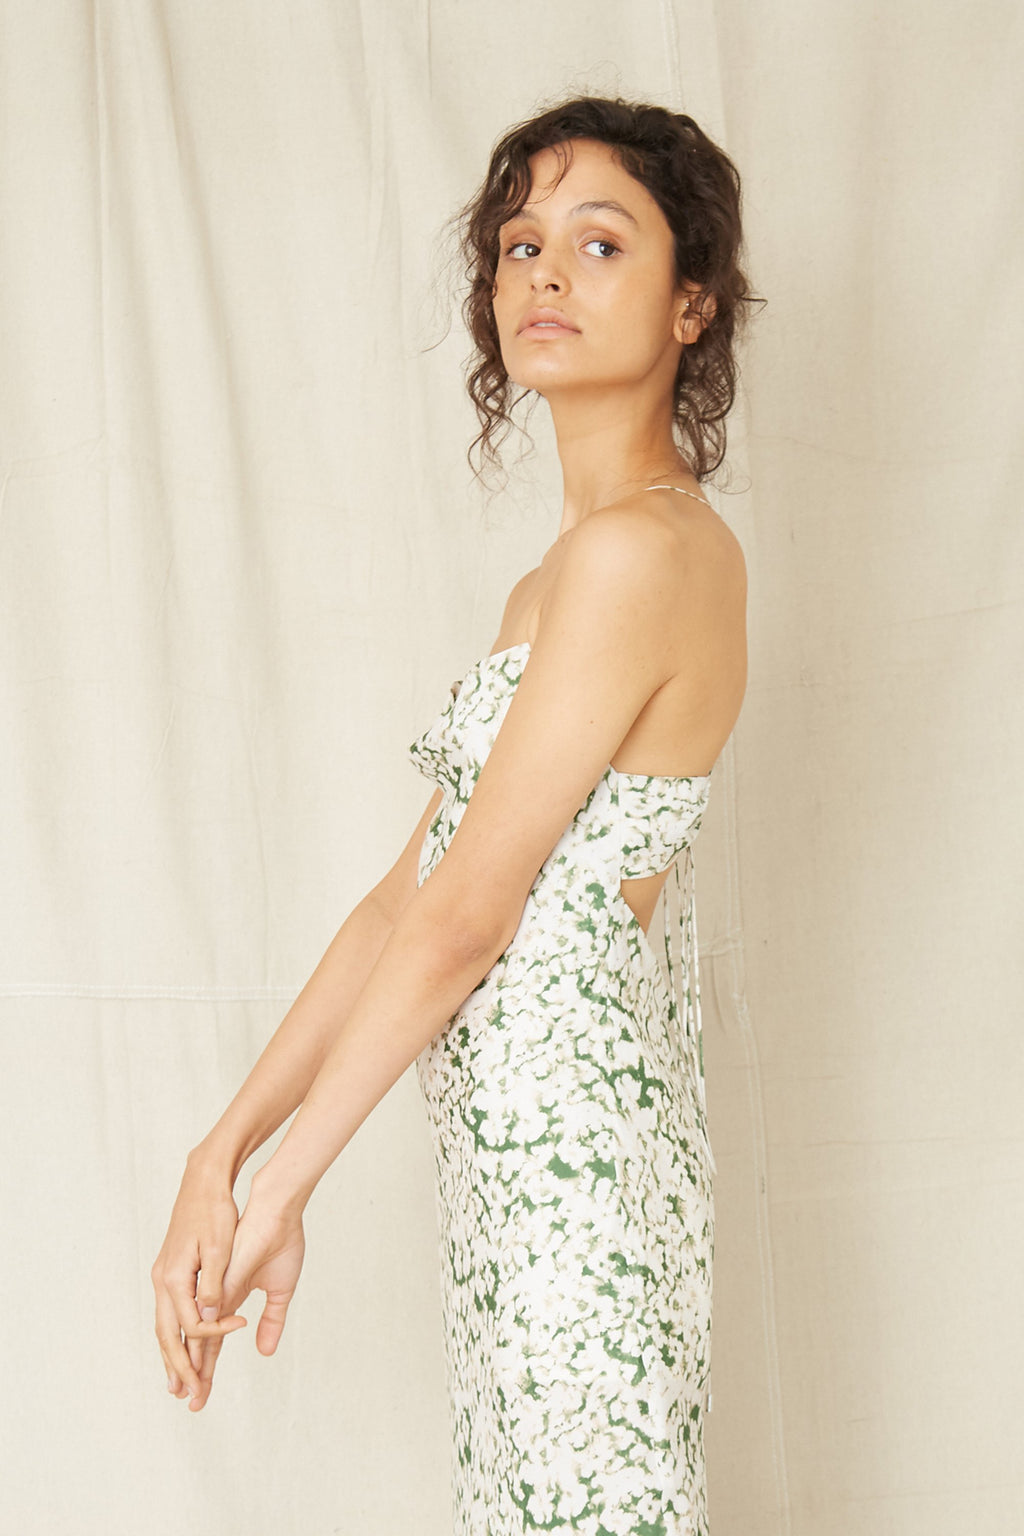 Third Form Pressed Flowers Bias Slip Dress - Floral